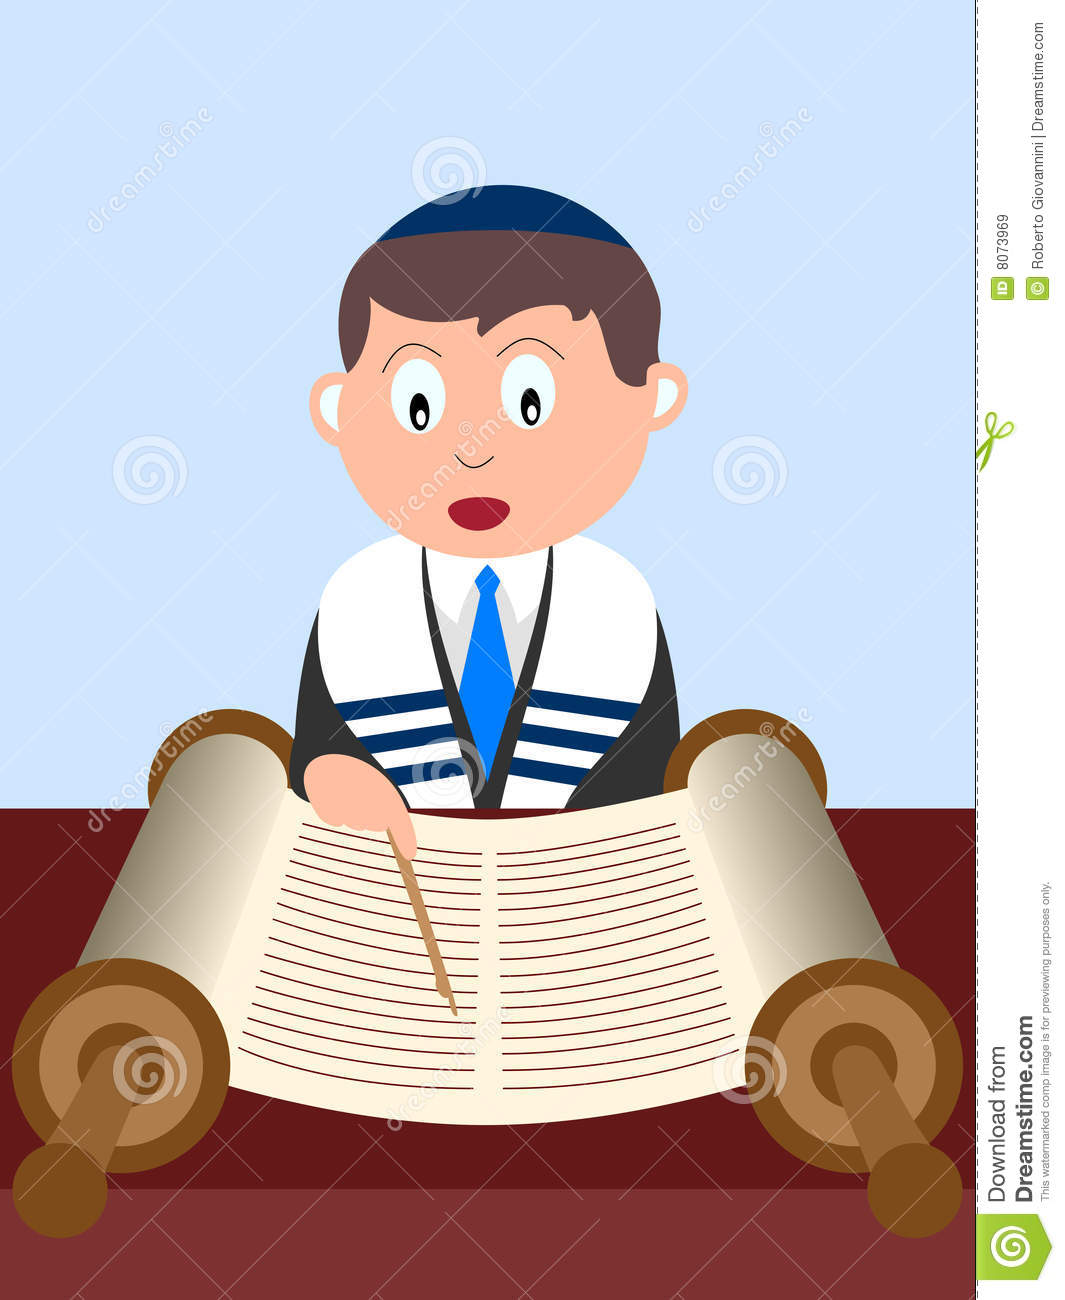 Boy Reading The Torah Stock Vector. Illustration Of Celebration